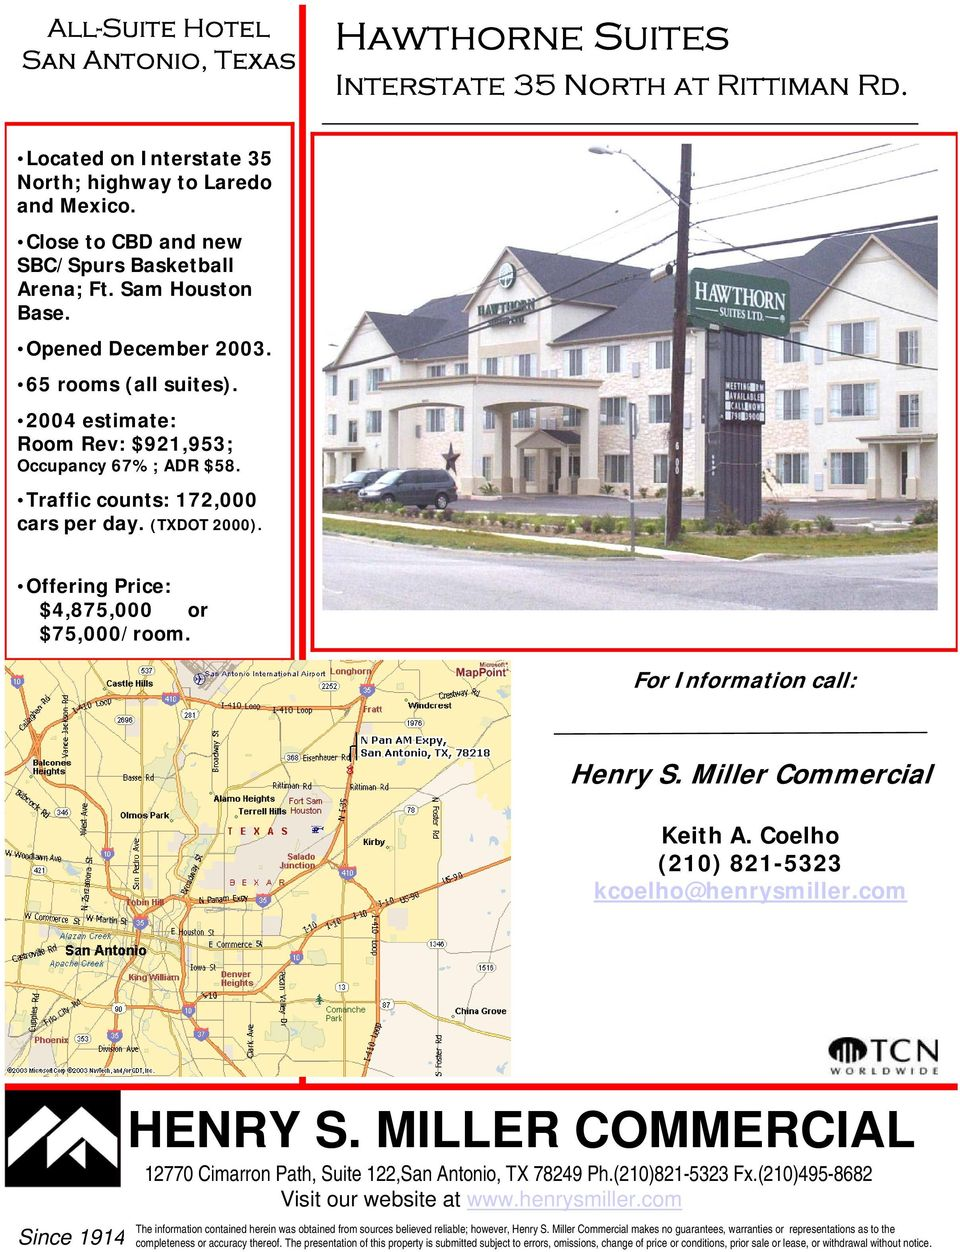 Traffic counts: 172,000 cars per day. (TXDOT 2000). Offering Price: $4,875,000 or $75,000/room. For Information call: Henry S. Miller Commercial Keith A. Coelho (210) 821-5323 kcoelho@henrysmiller.